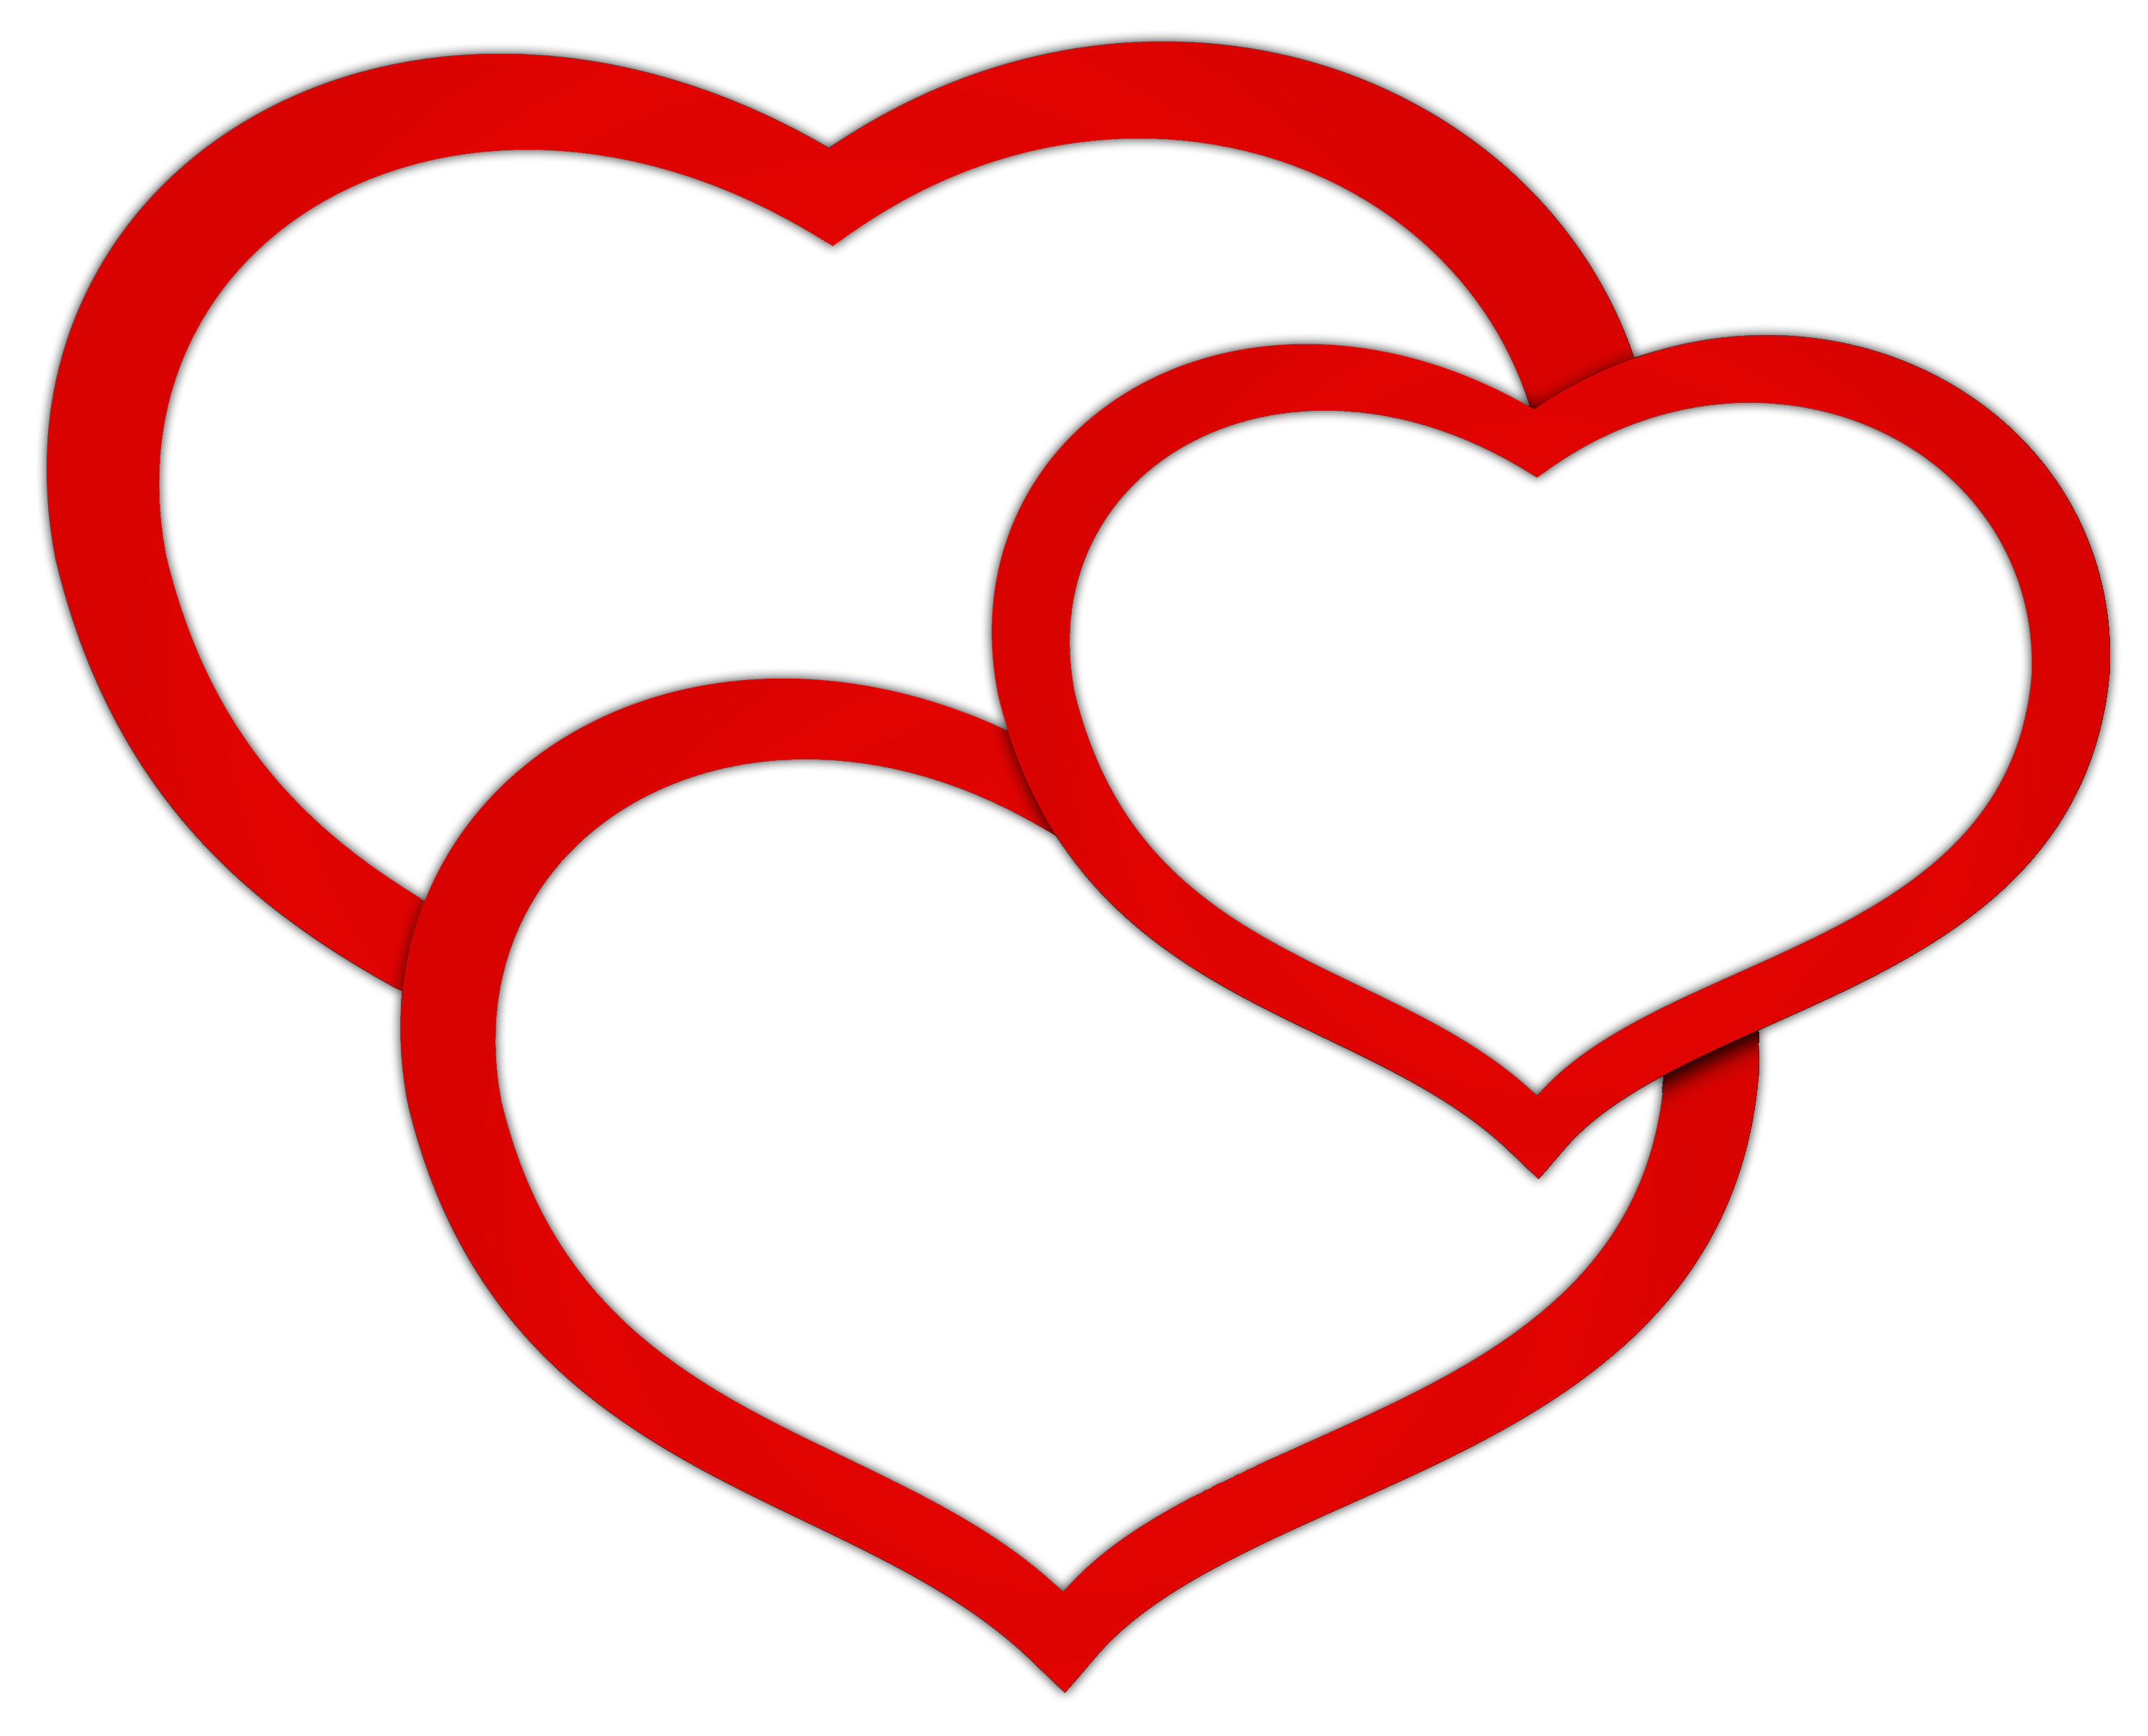 Transparent red triple png. Clipart hearts halloween